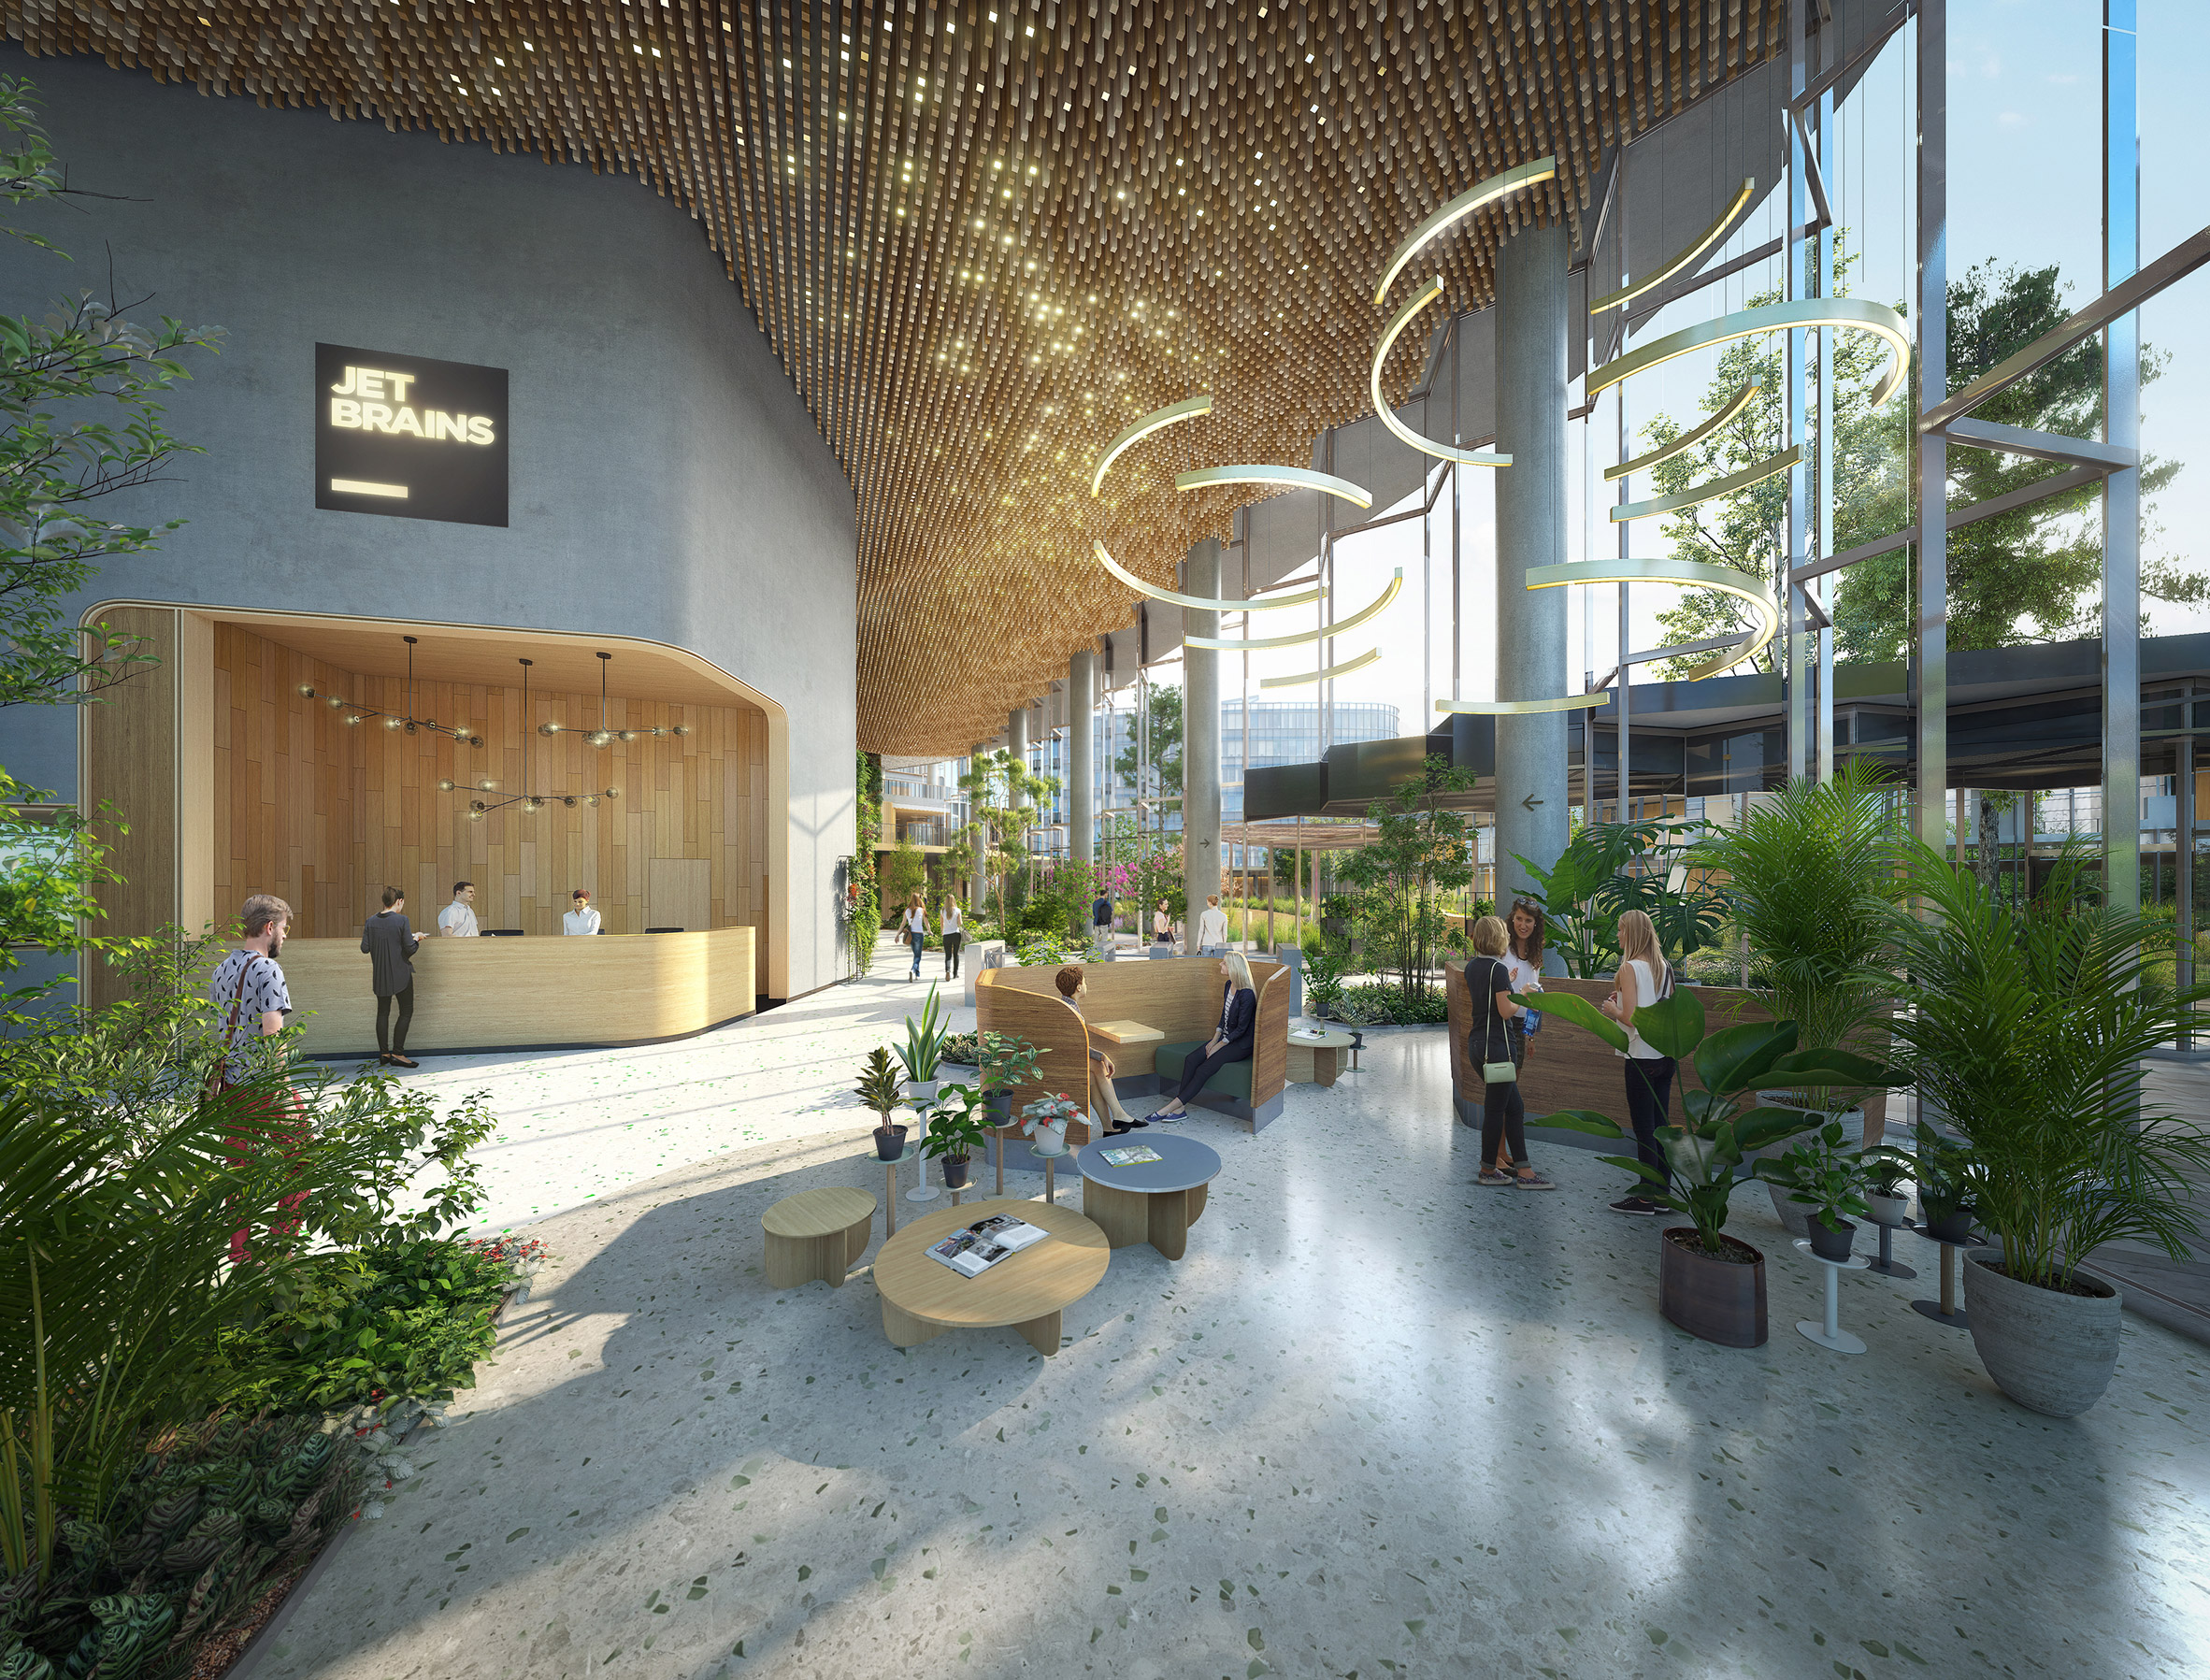 The design will have planters and biophilic design elements UNStudio